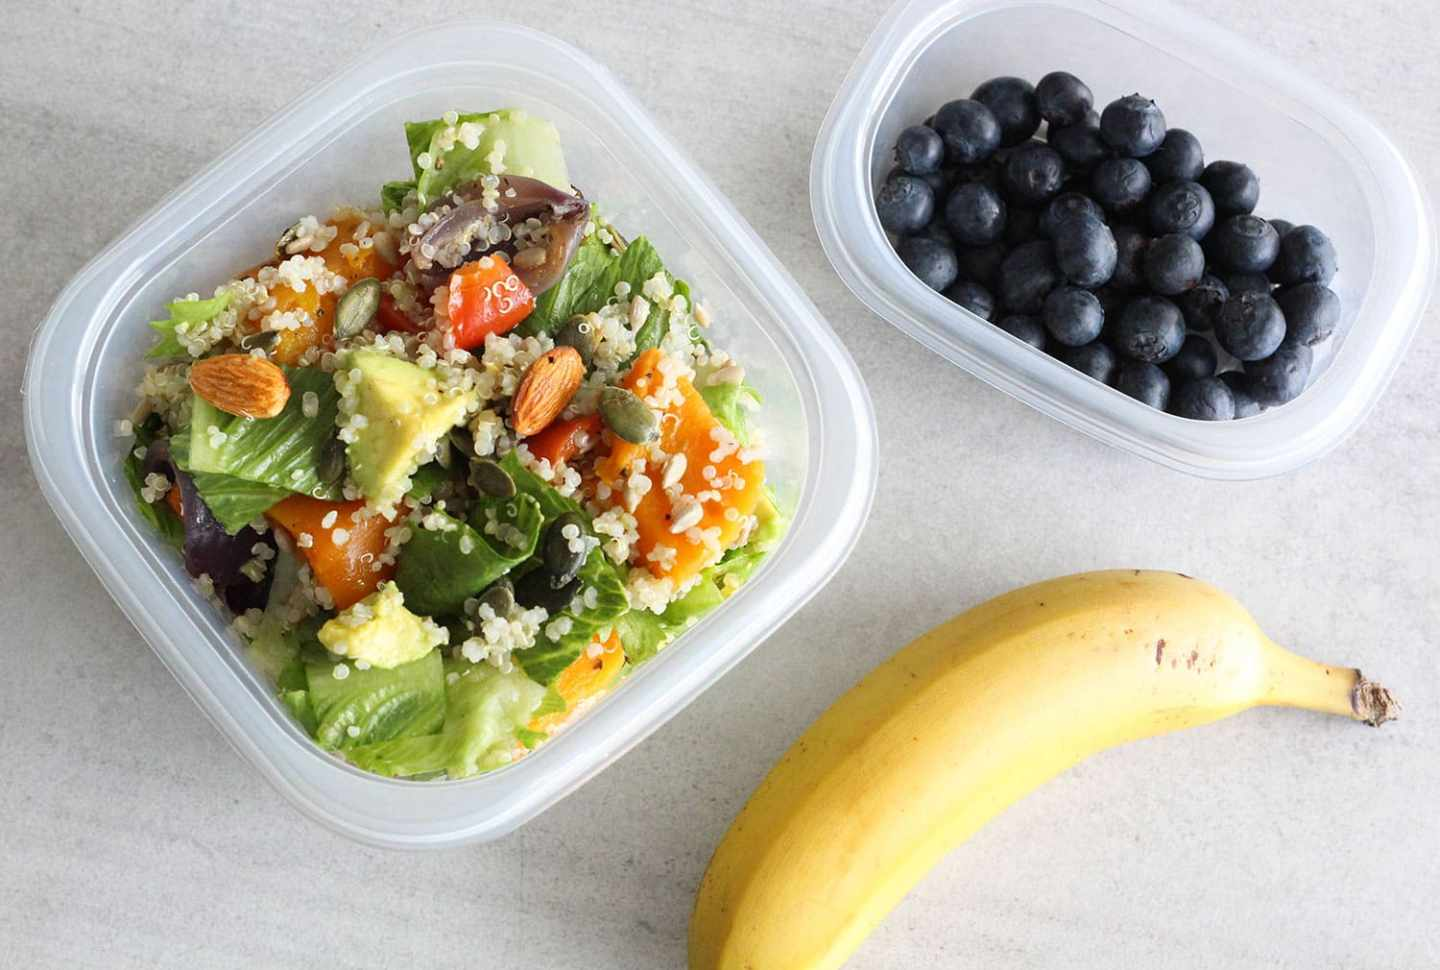 Easy Healthy Lunch Ideas For School or Work!